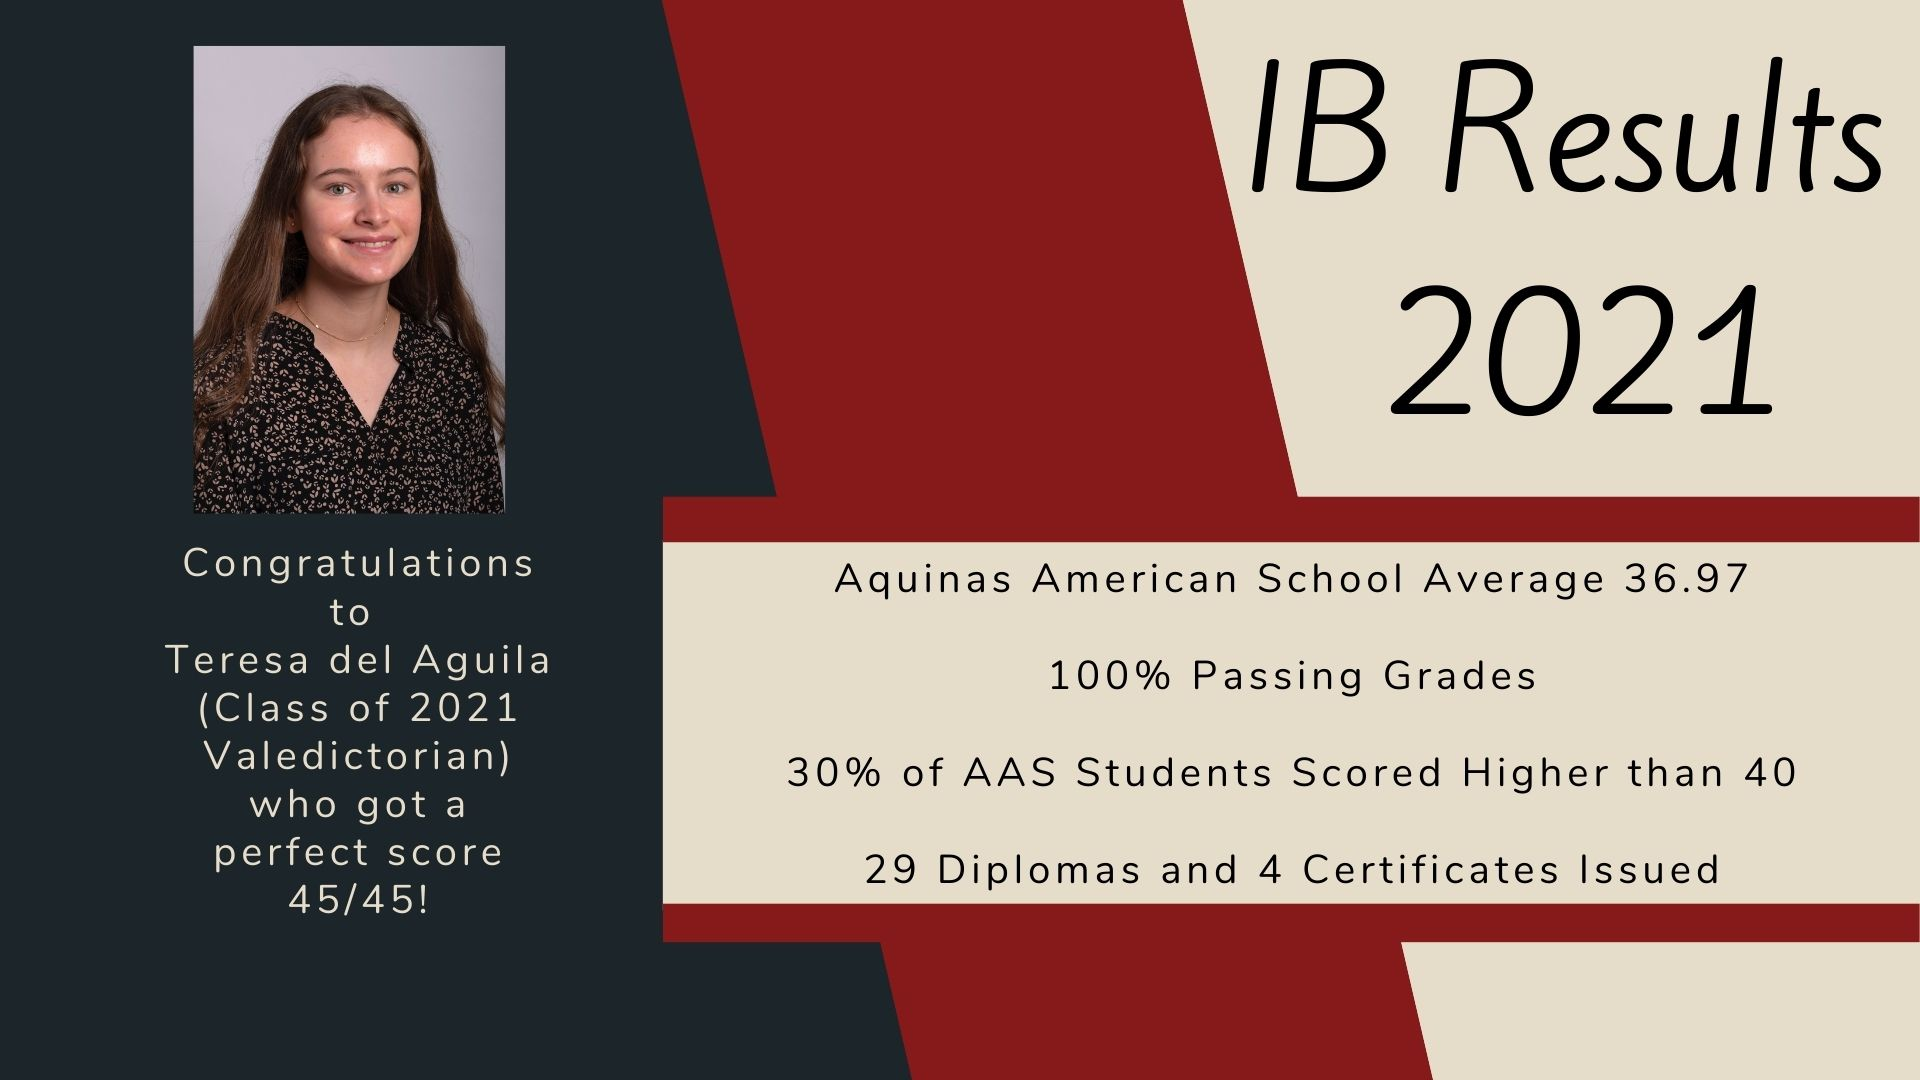 CONGRATULATIONS TO OUR IB CANDIDATES!